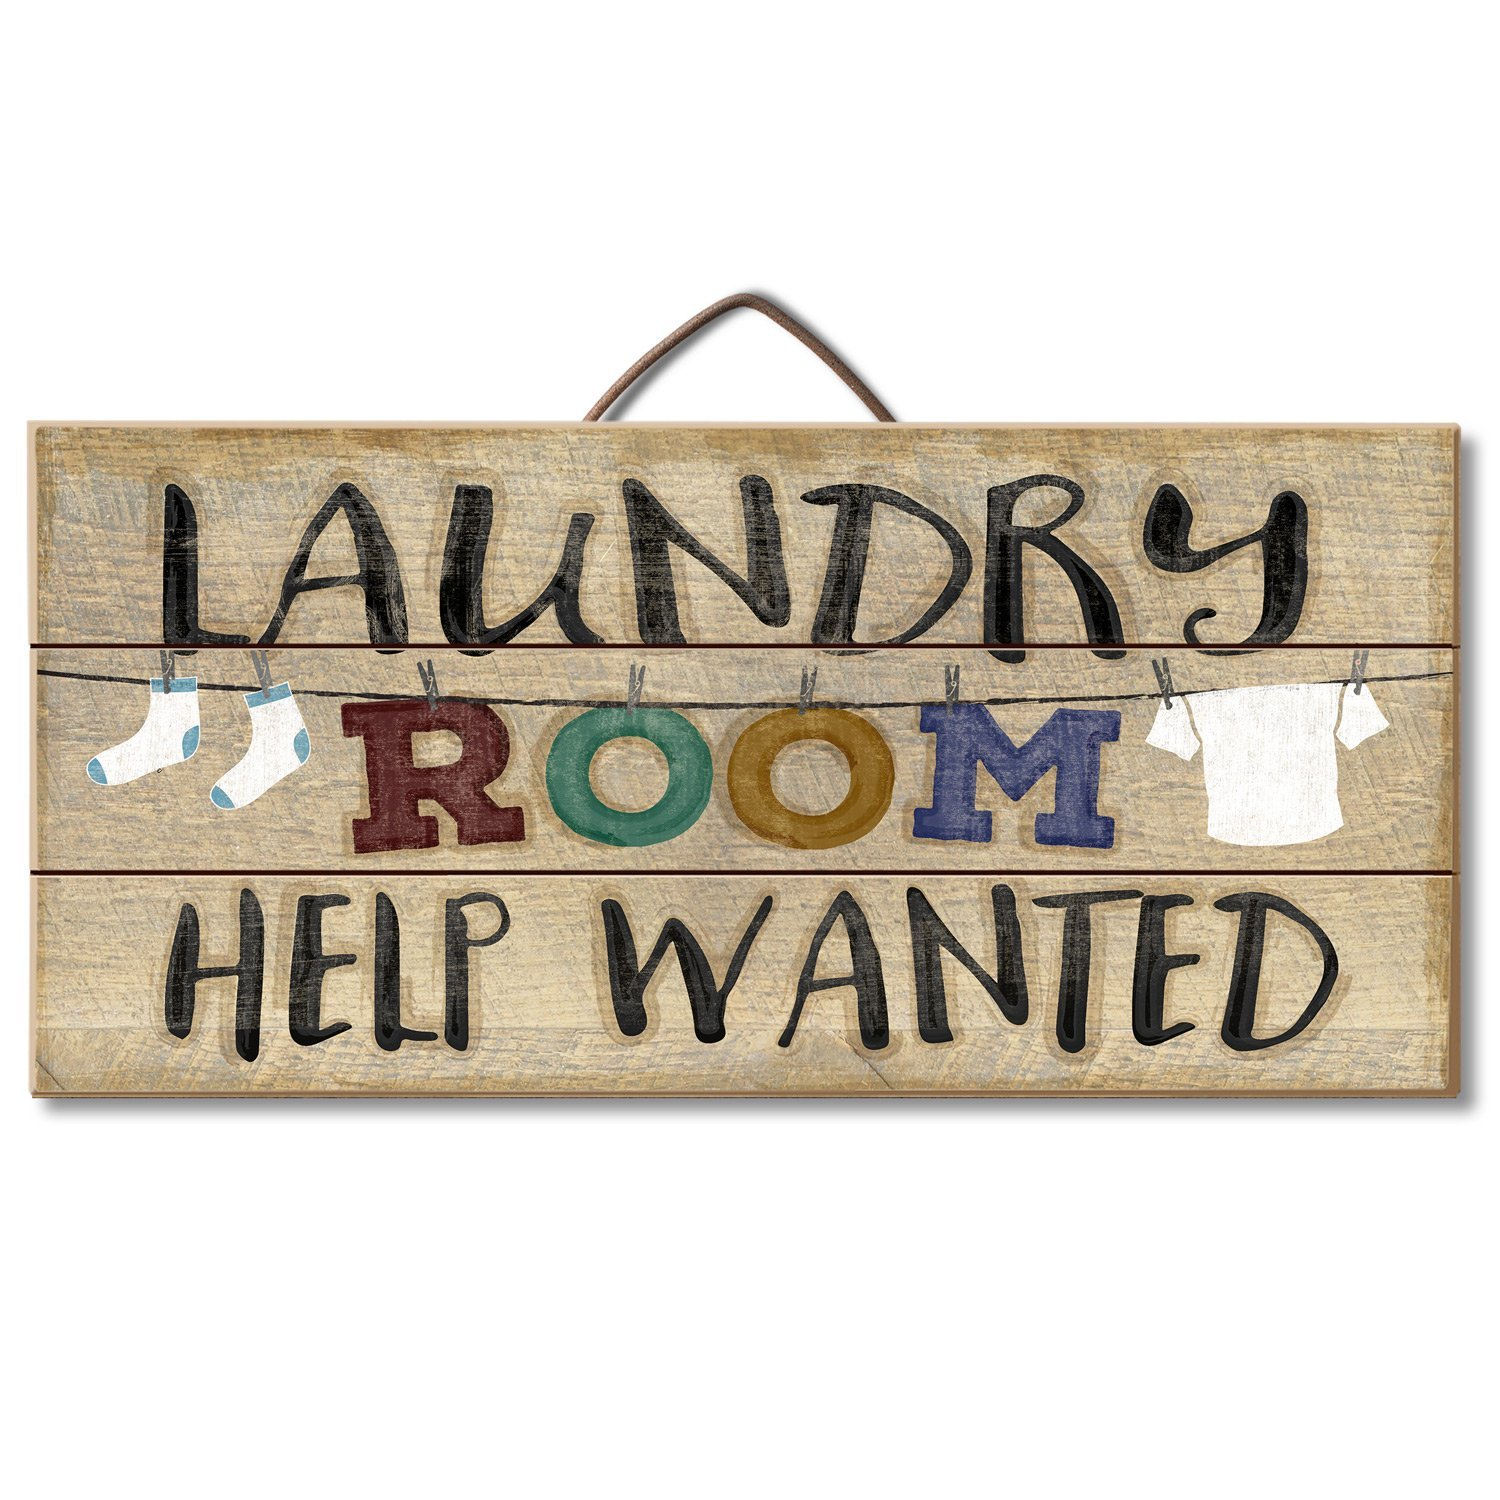 Laundry Room Help Wanted Reclaimed Wood Pallet Sign DomesticDivasCoupons